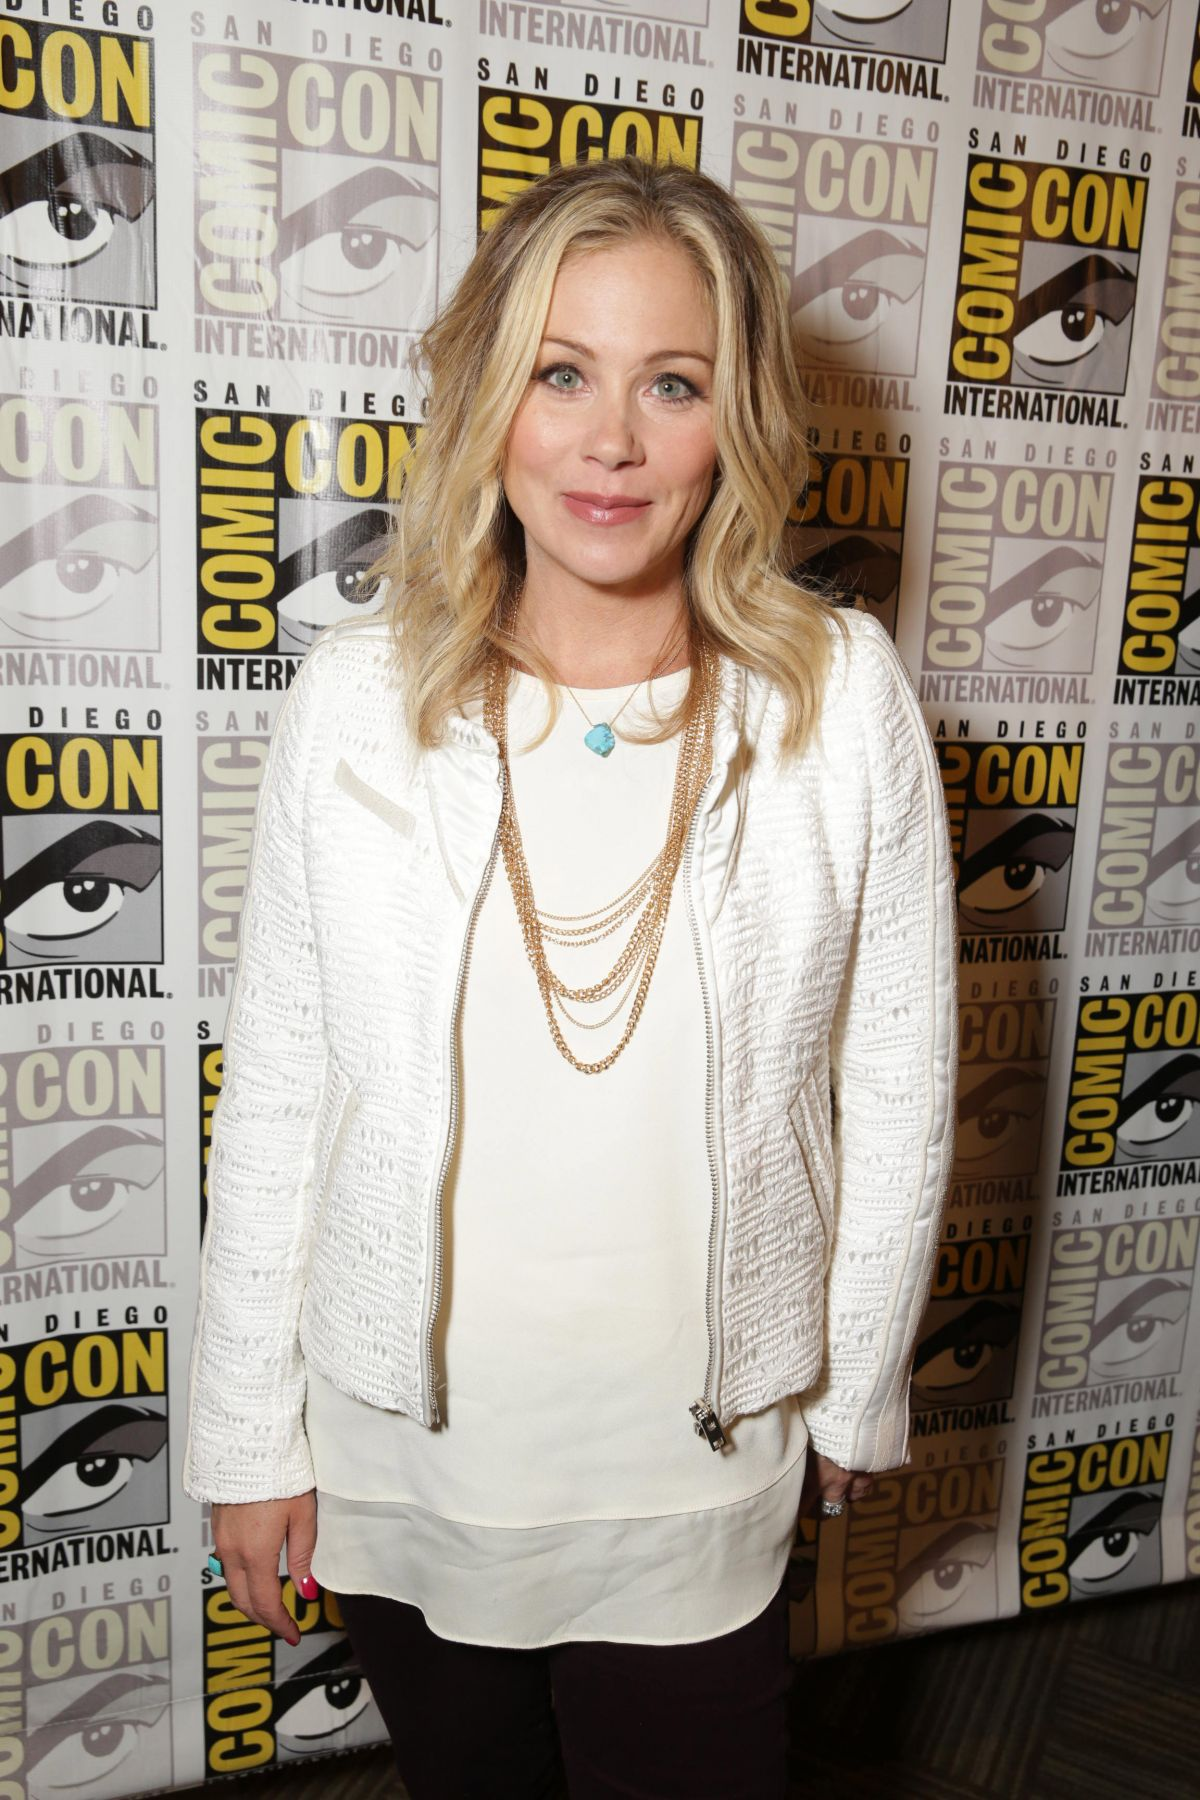 CHRISTINA APPLEGATE at Book of Life Panel at Comic-con in San Diego